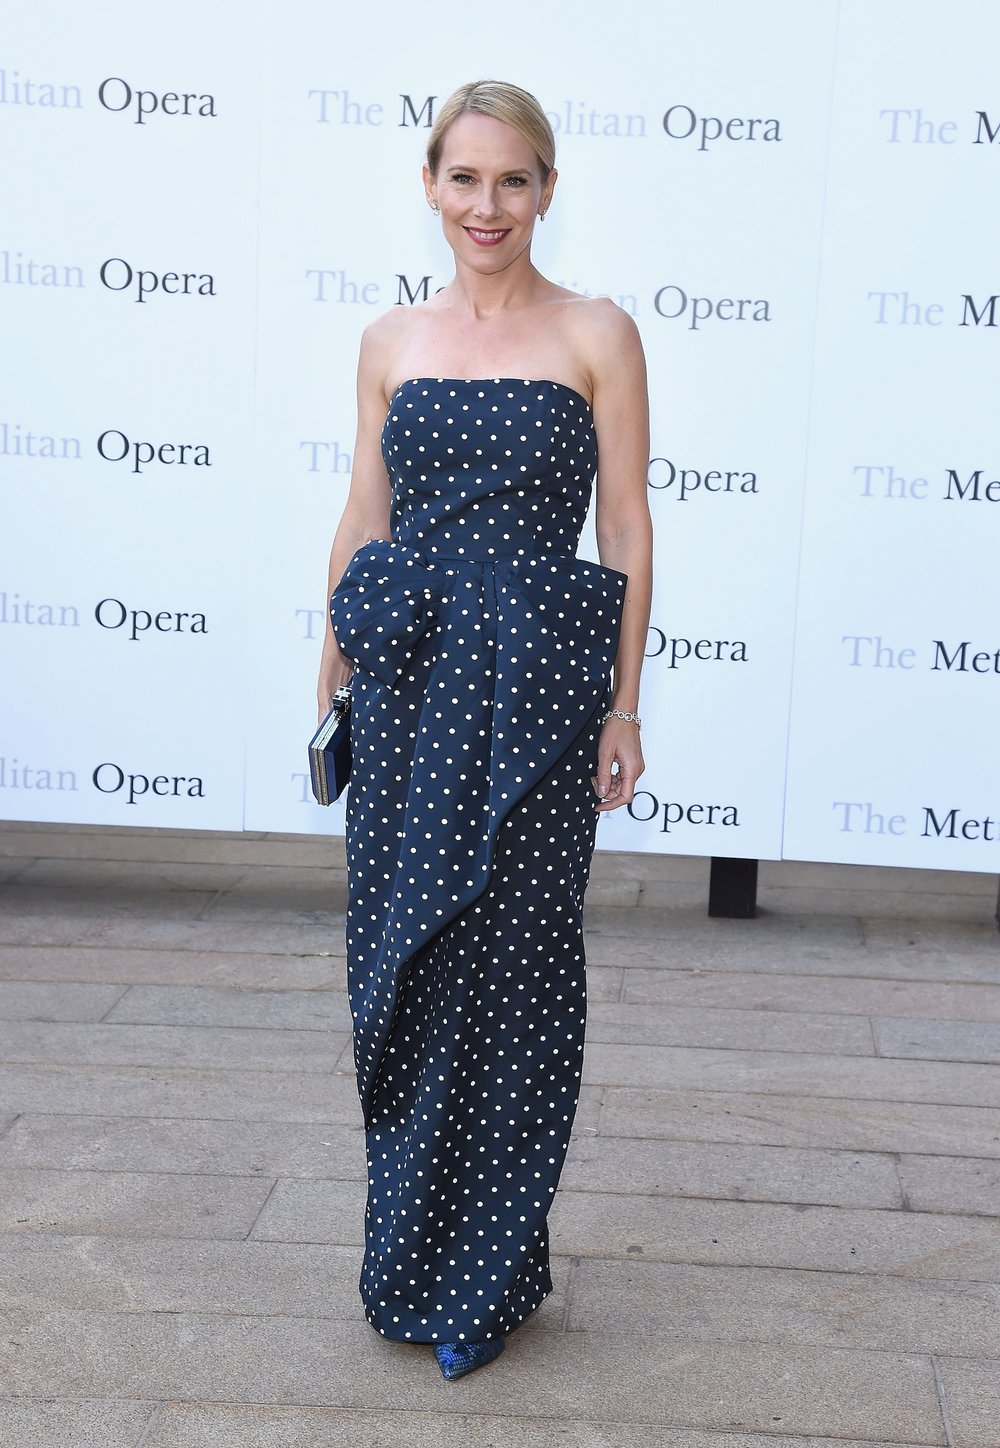 AMY RYAN in Vintage VICTOR COSTA from ALEANDRA NEW YORK - Metropolitan Opera Opening Night Gala, NYC, 2014